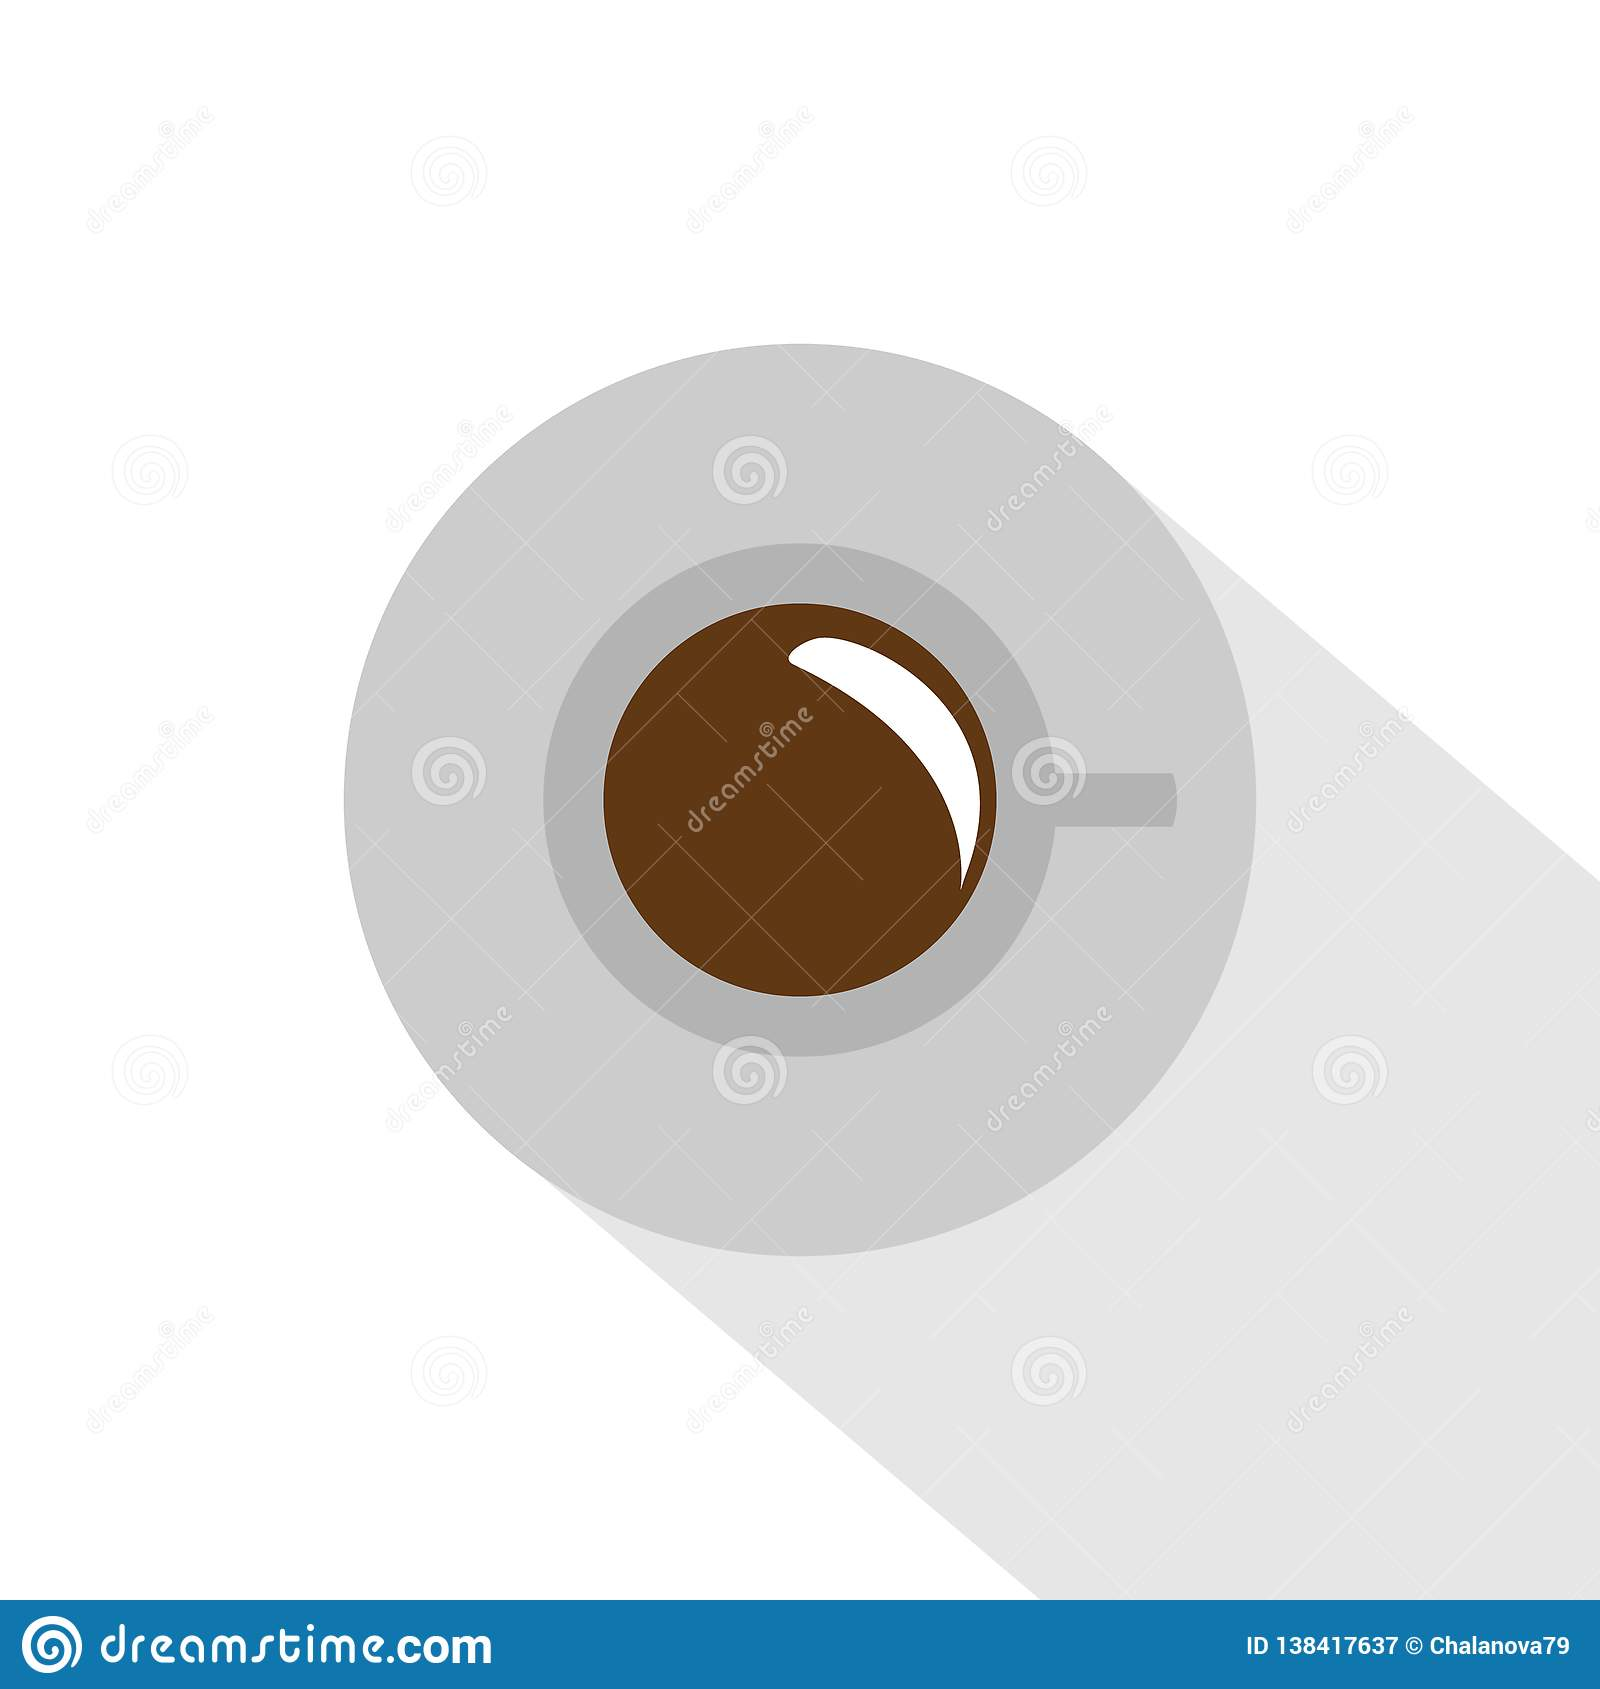 Vector illustration. Cup of coffee on the table. Flat design. Cup with shadow. Top View.